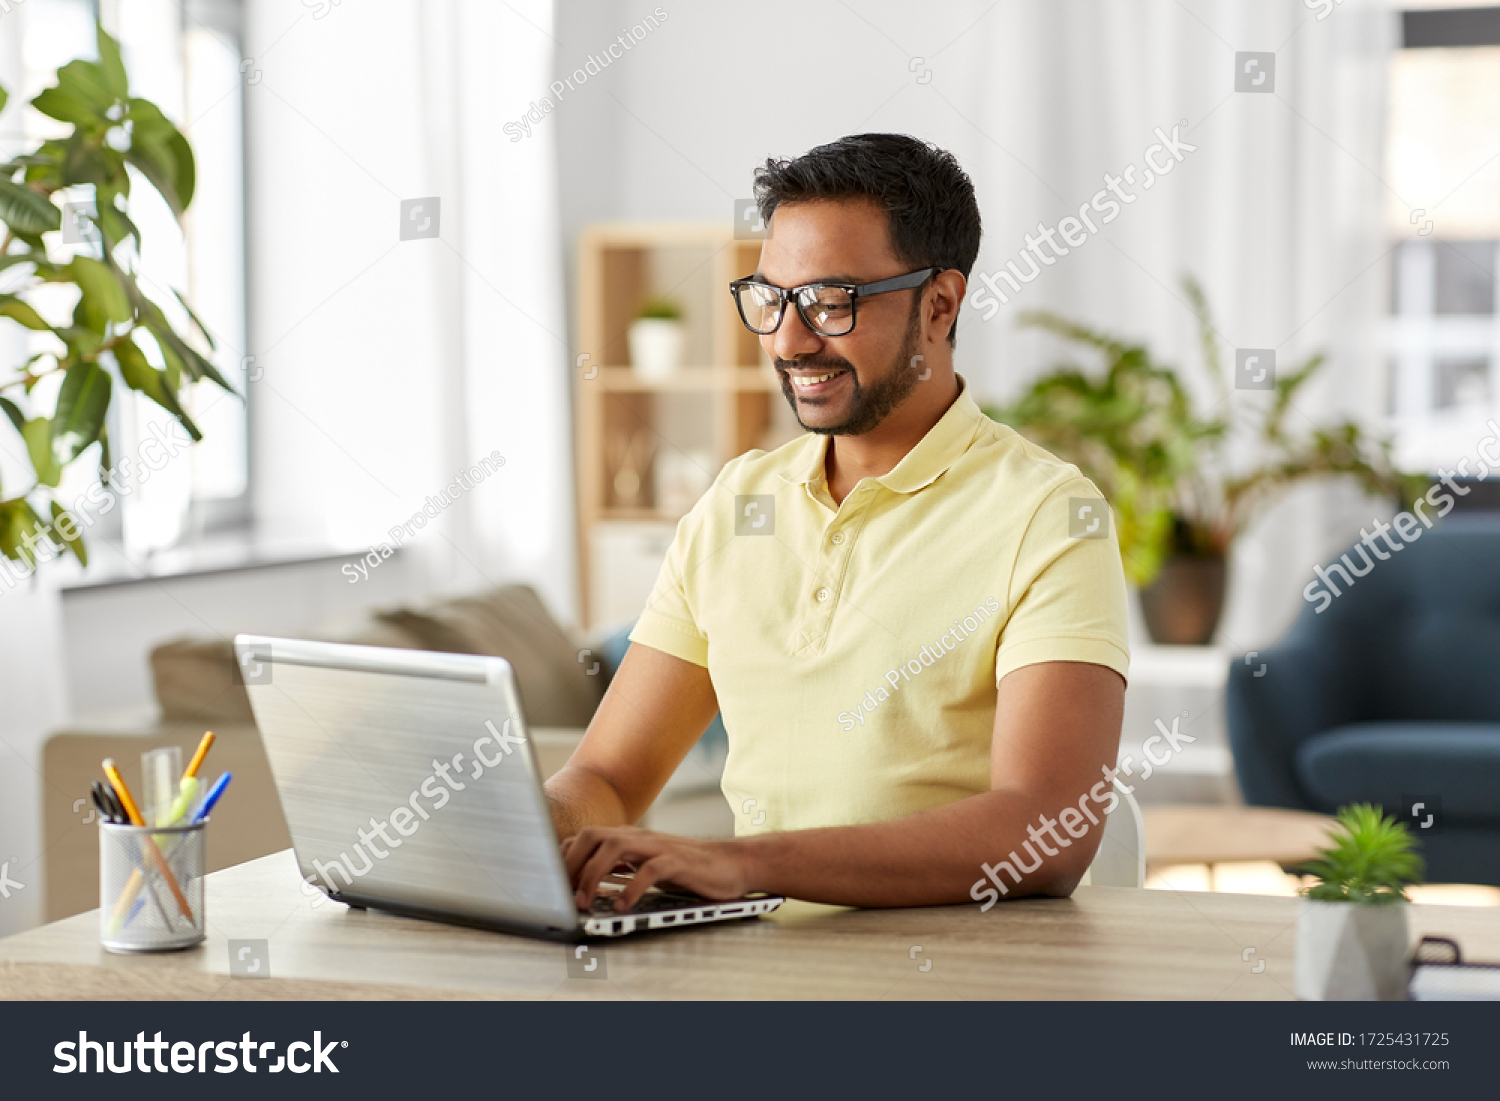 technology, remote job and lifestyle concept - happy indian man in glasses with laptop computer working at home office #1725431725